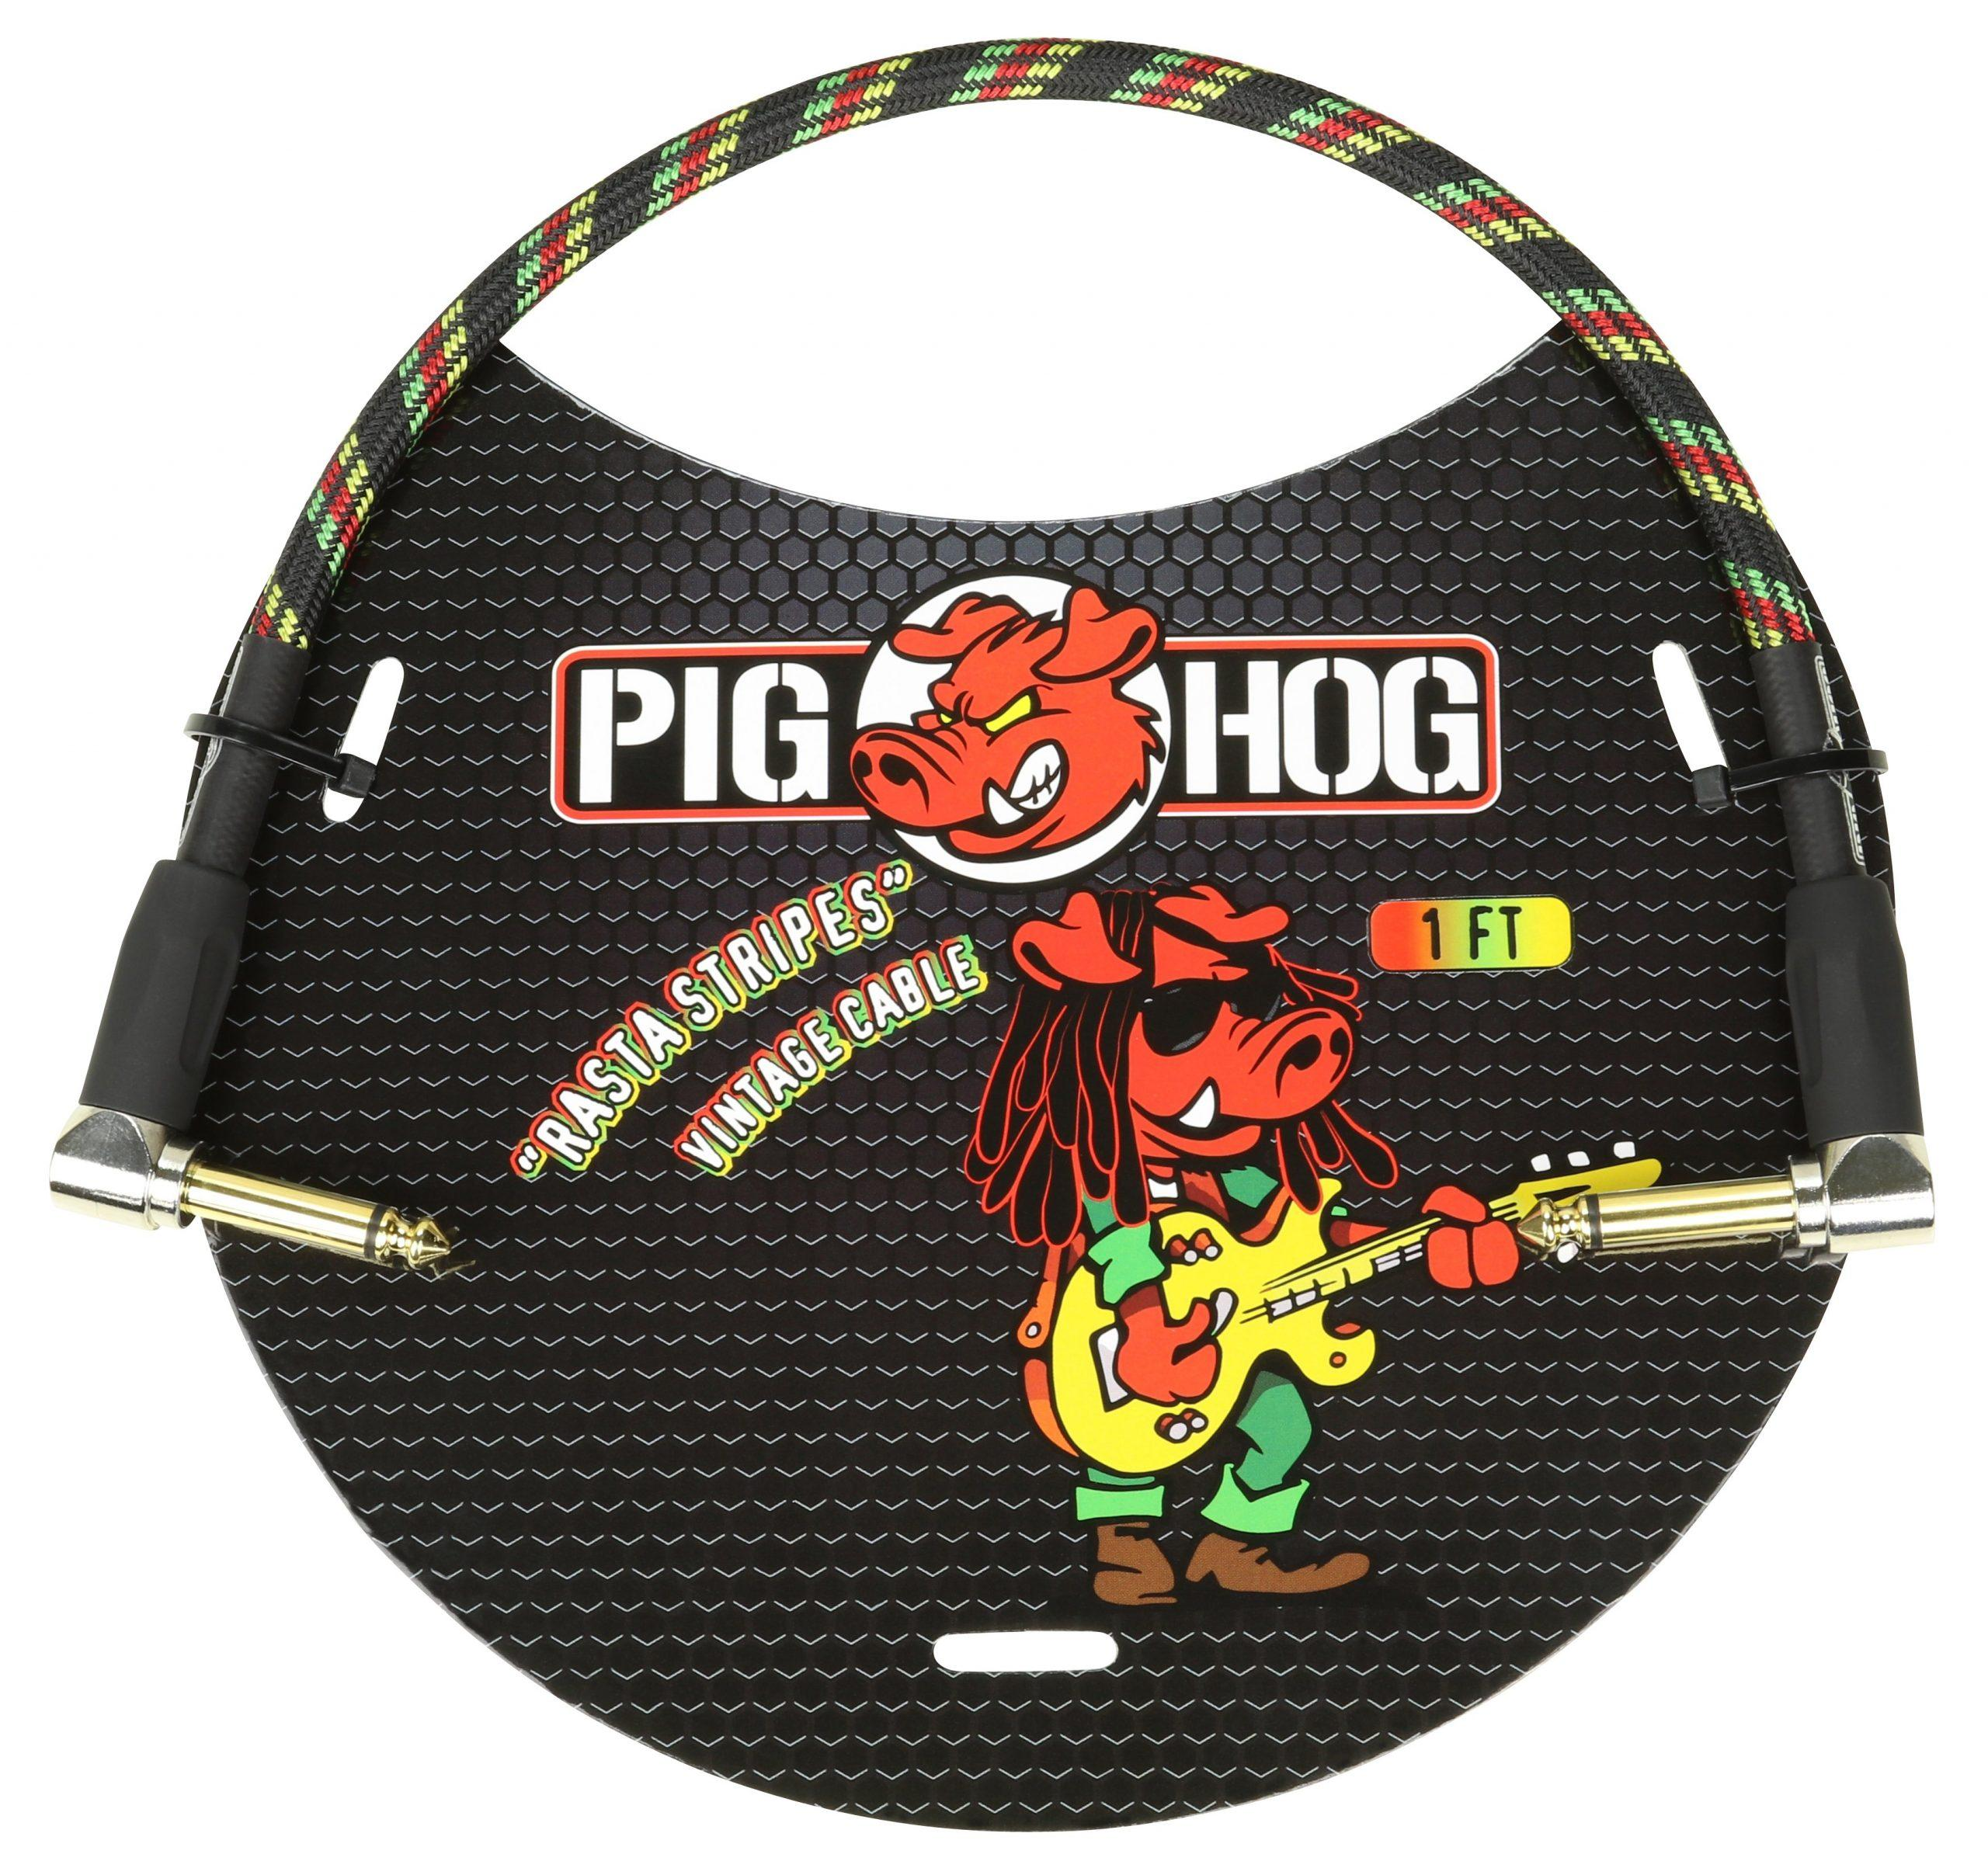 """Pig Hog """"Rasta Stripe"""" 1ft Right Angled Patch Cables"""